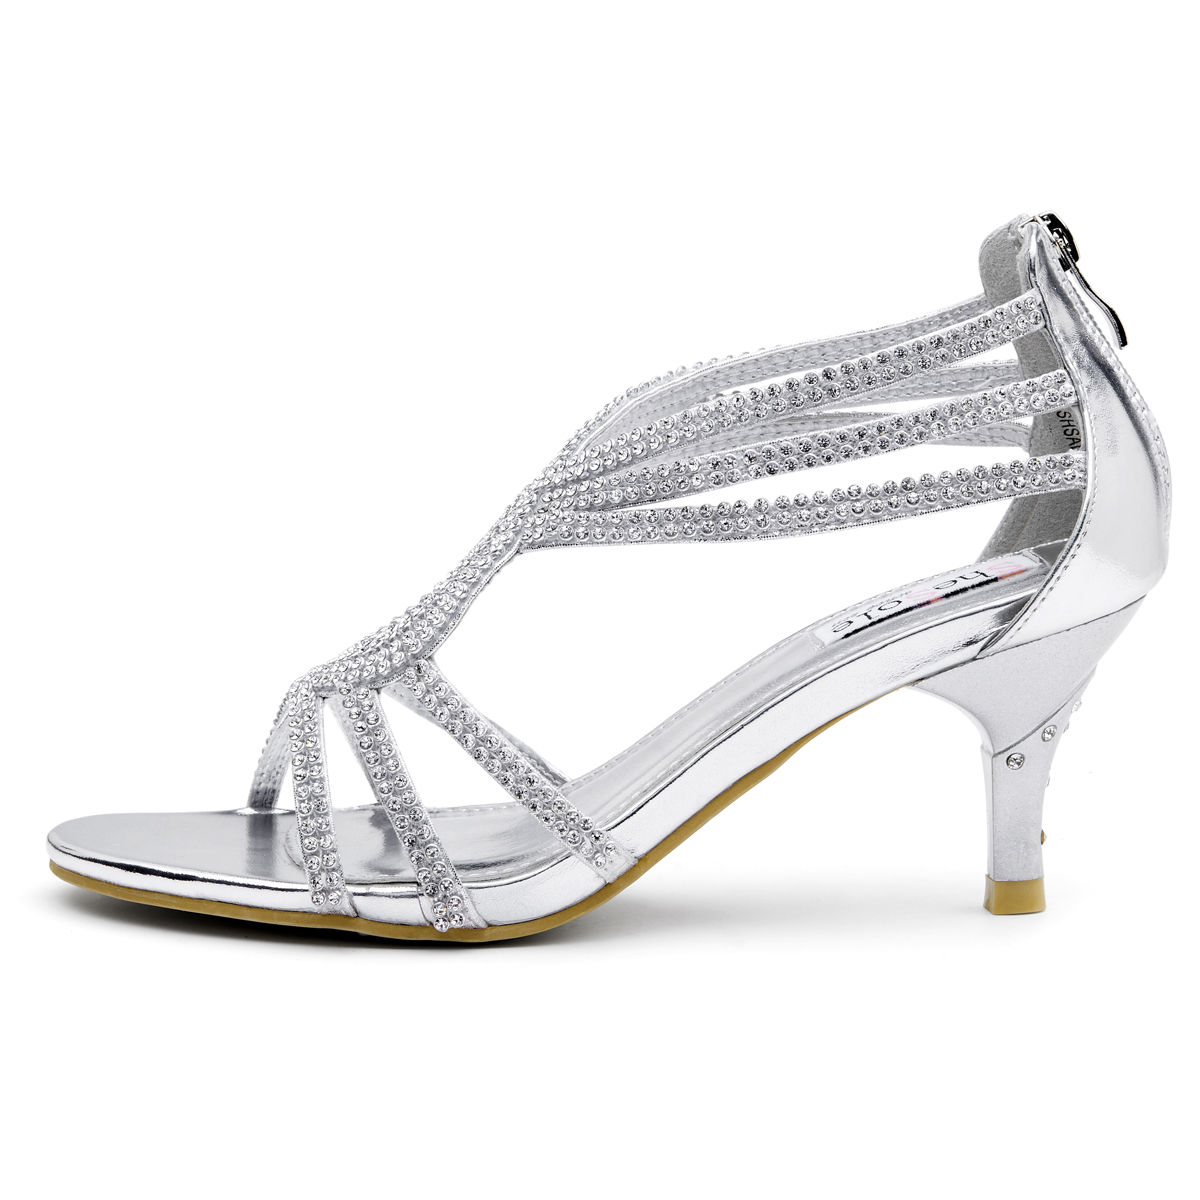 Bridal Shoes Silver: SheSole Womens Sandals Heels Shoes Crystal Silver Wedding